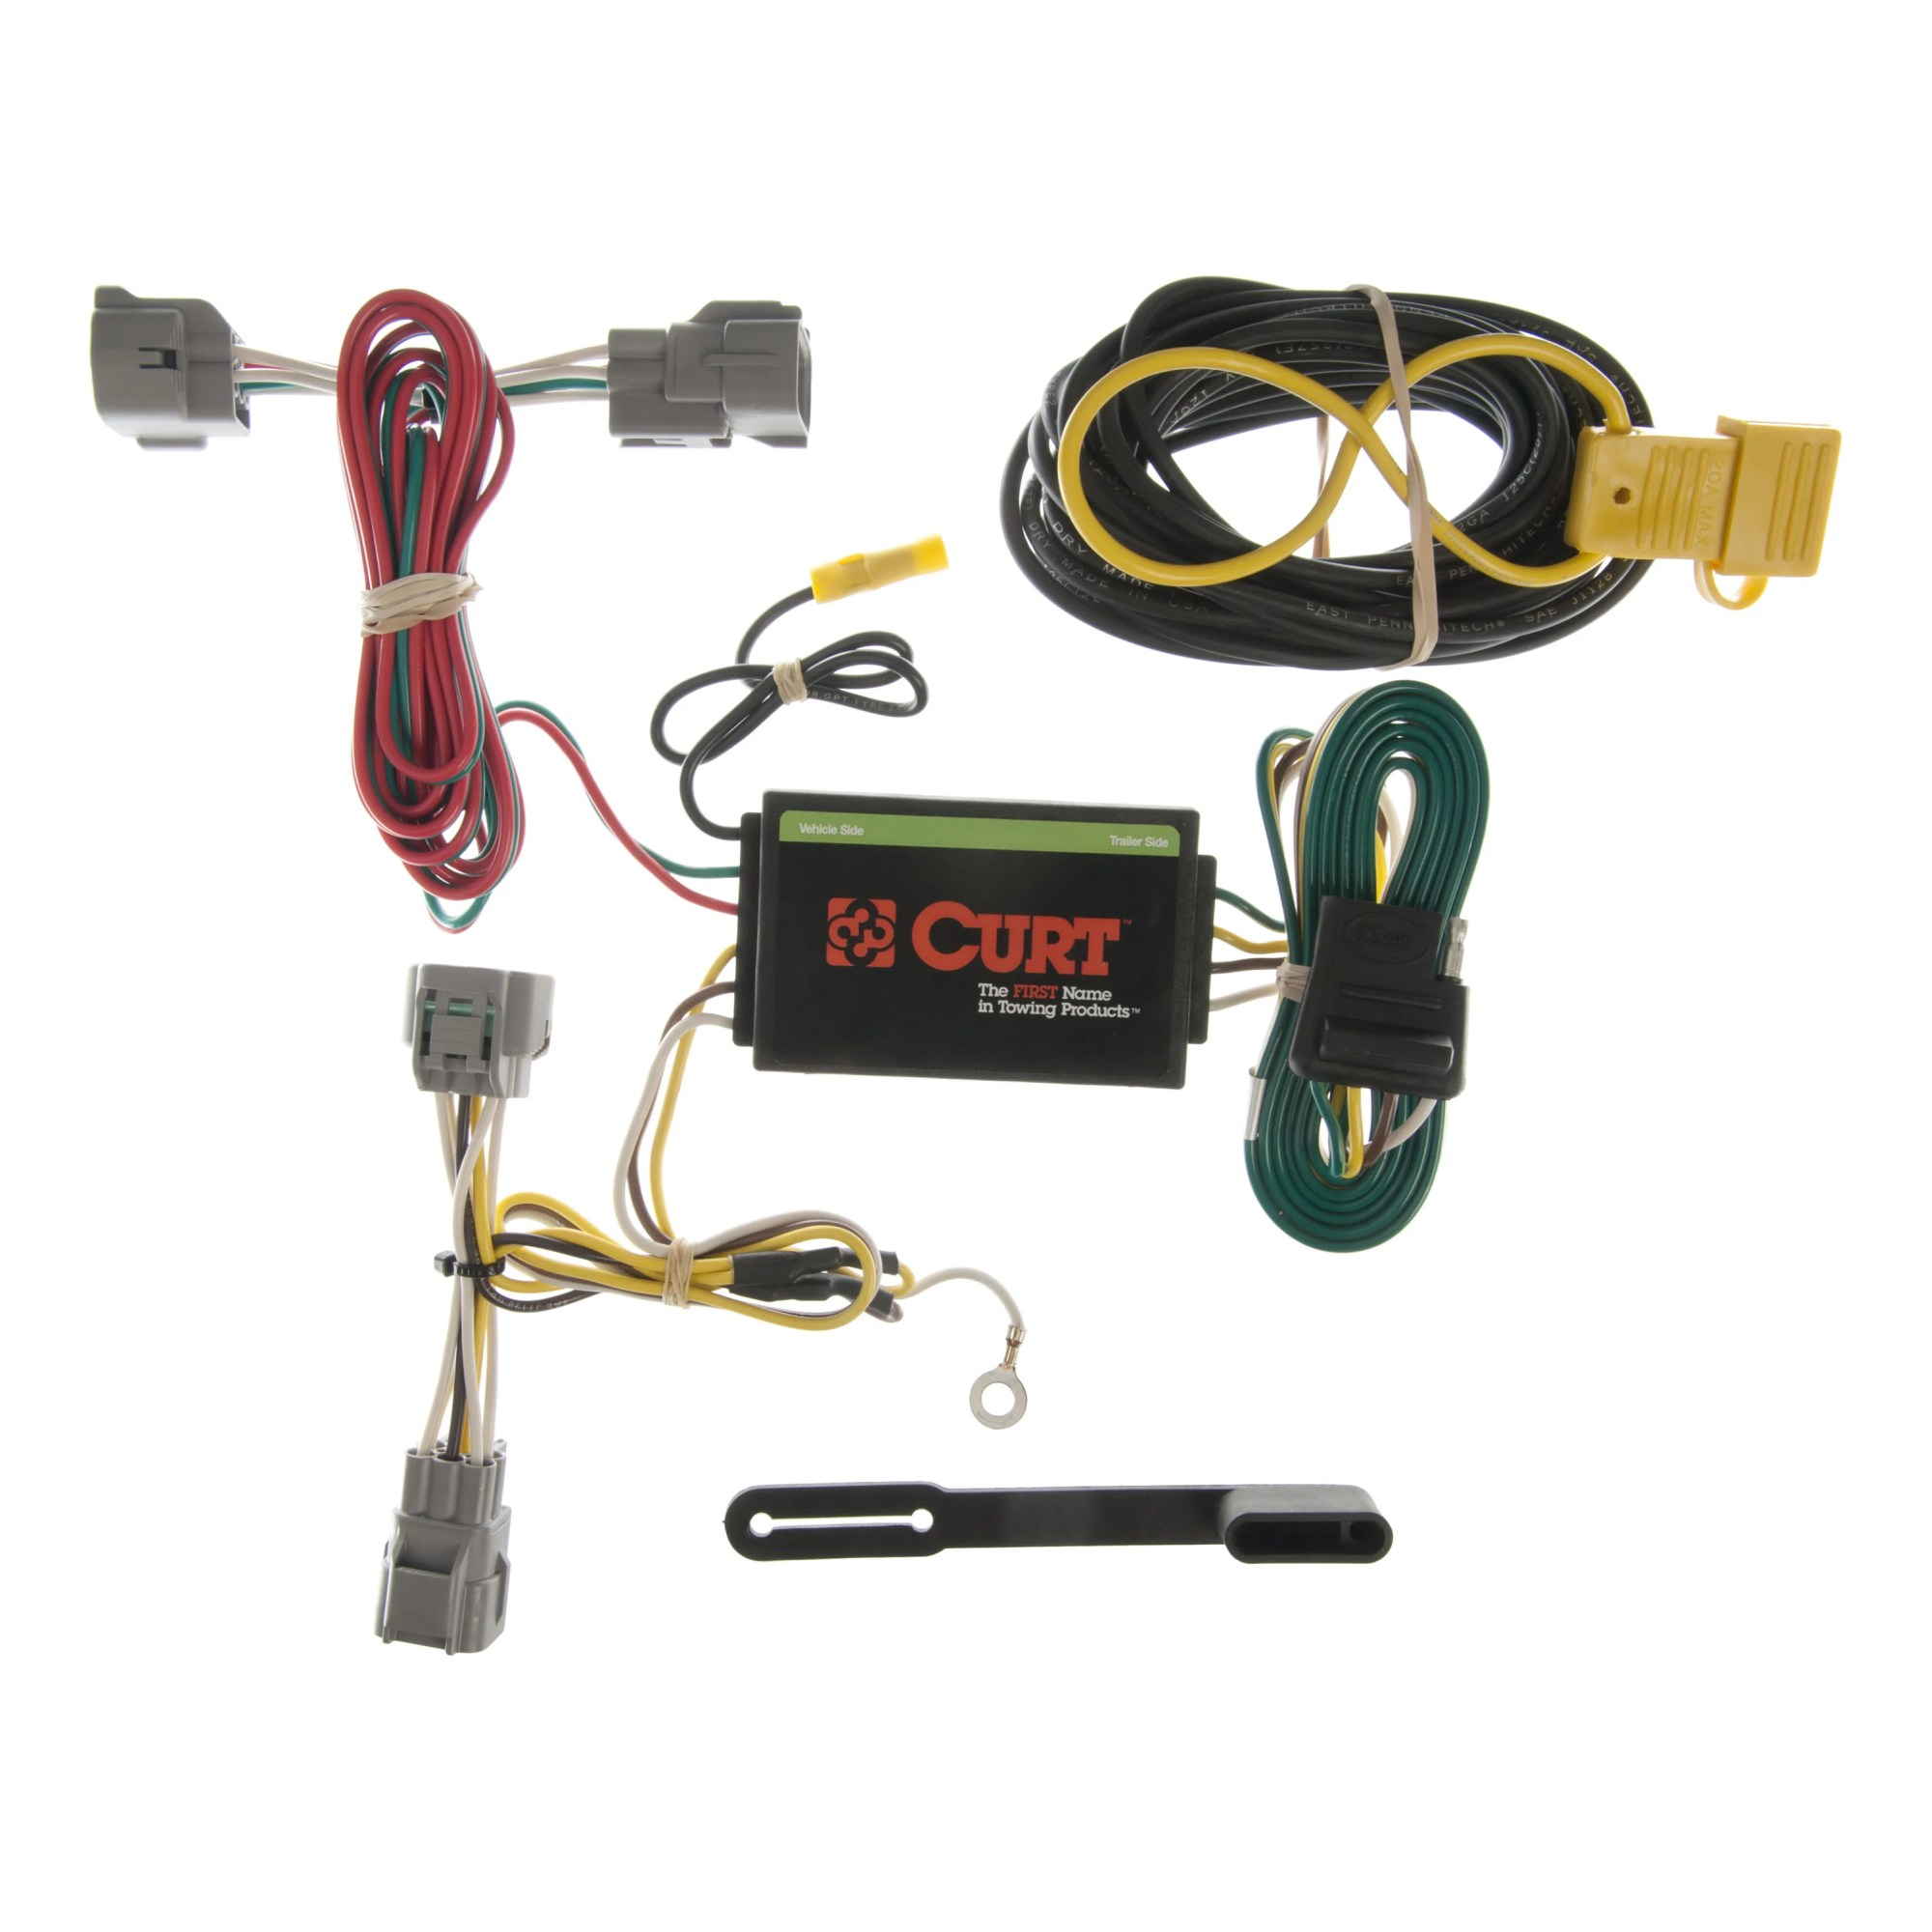 hight resolution of curt vehicle to trailer wiring harness 55349 for 94 98 jeep grand trailer light wiring for